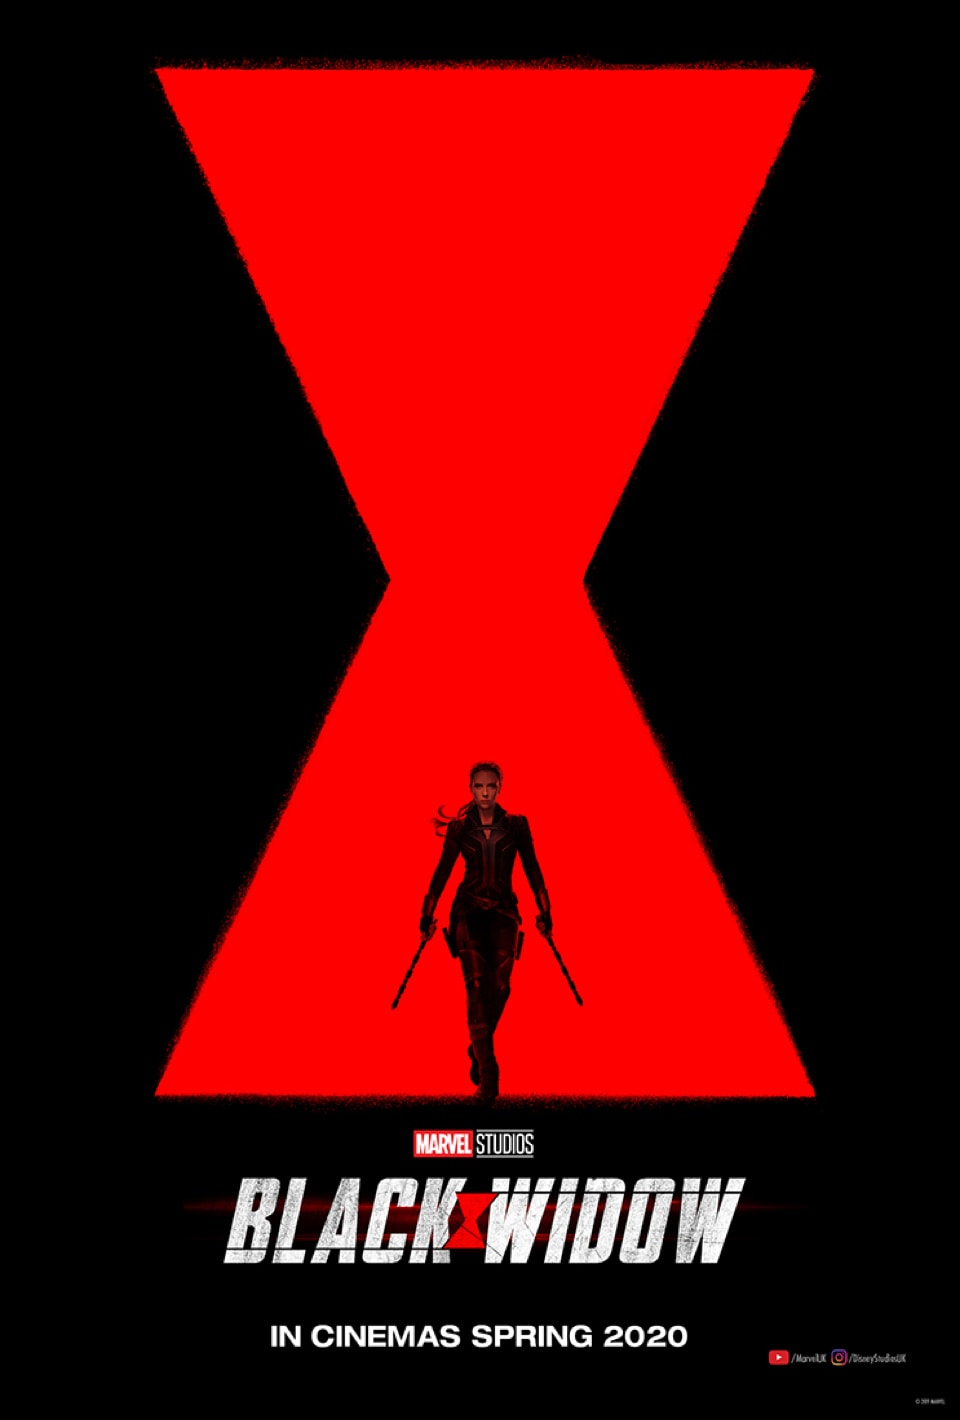 Silhouette of Black Widow in front of the logo